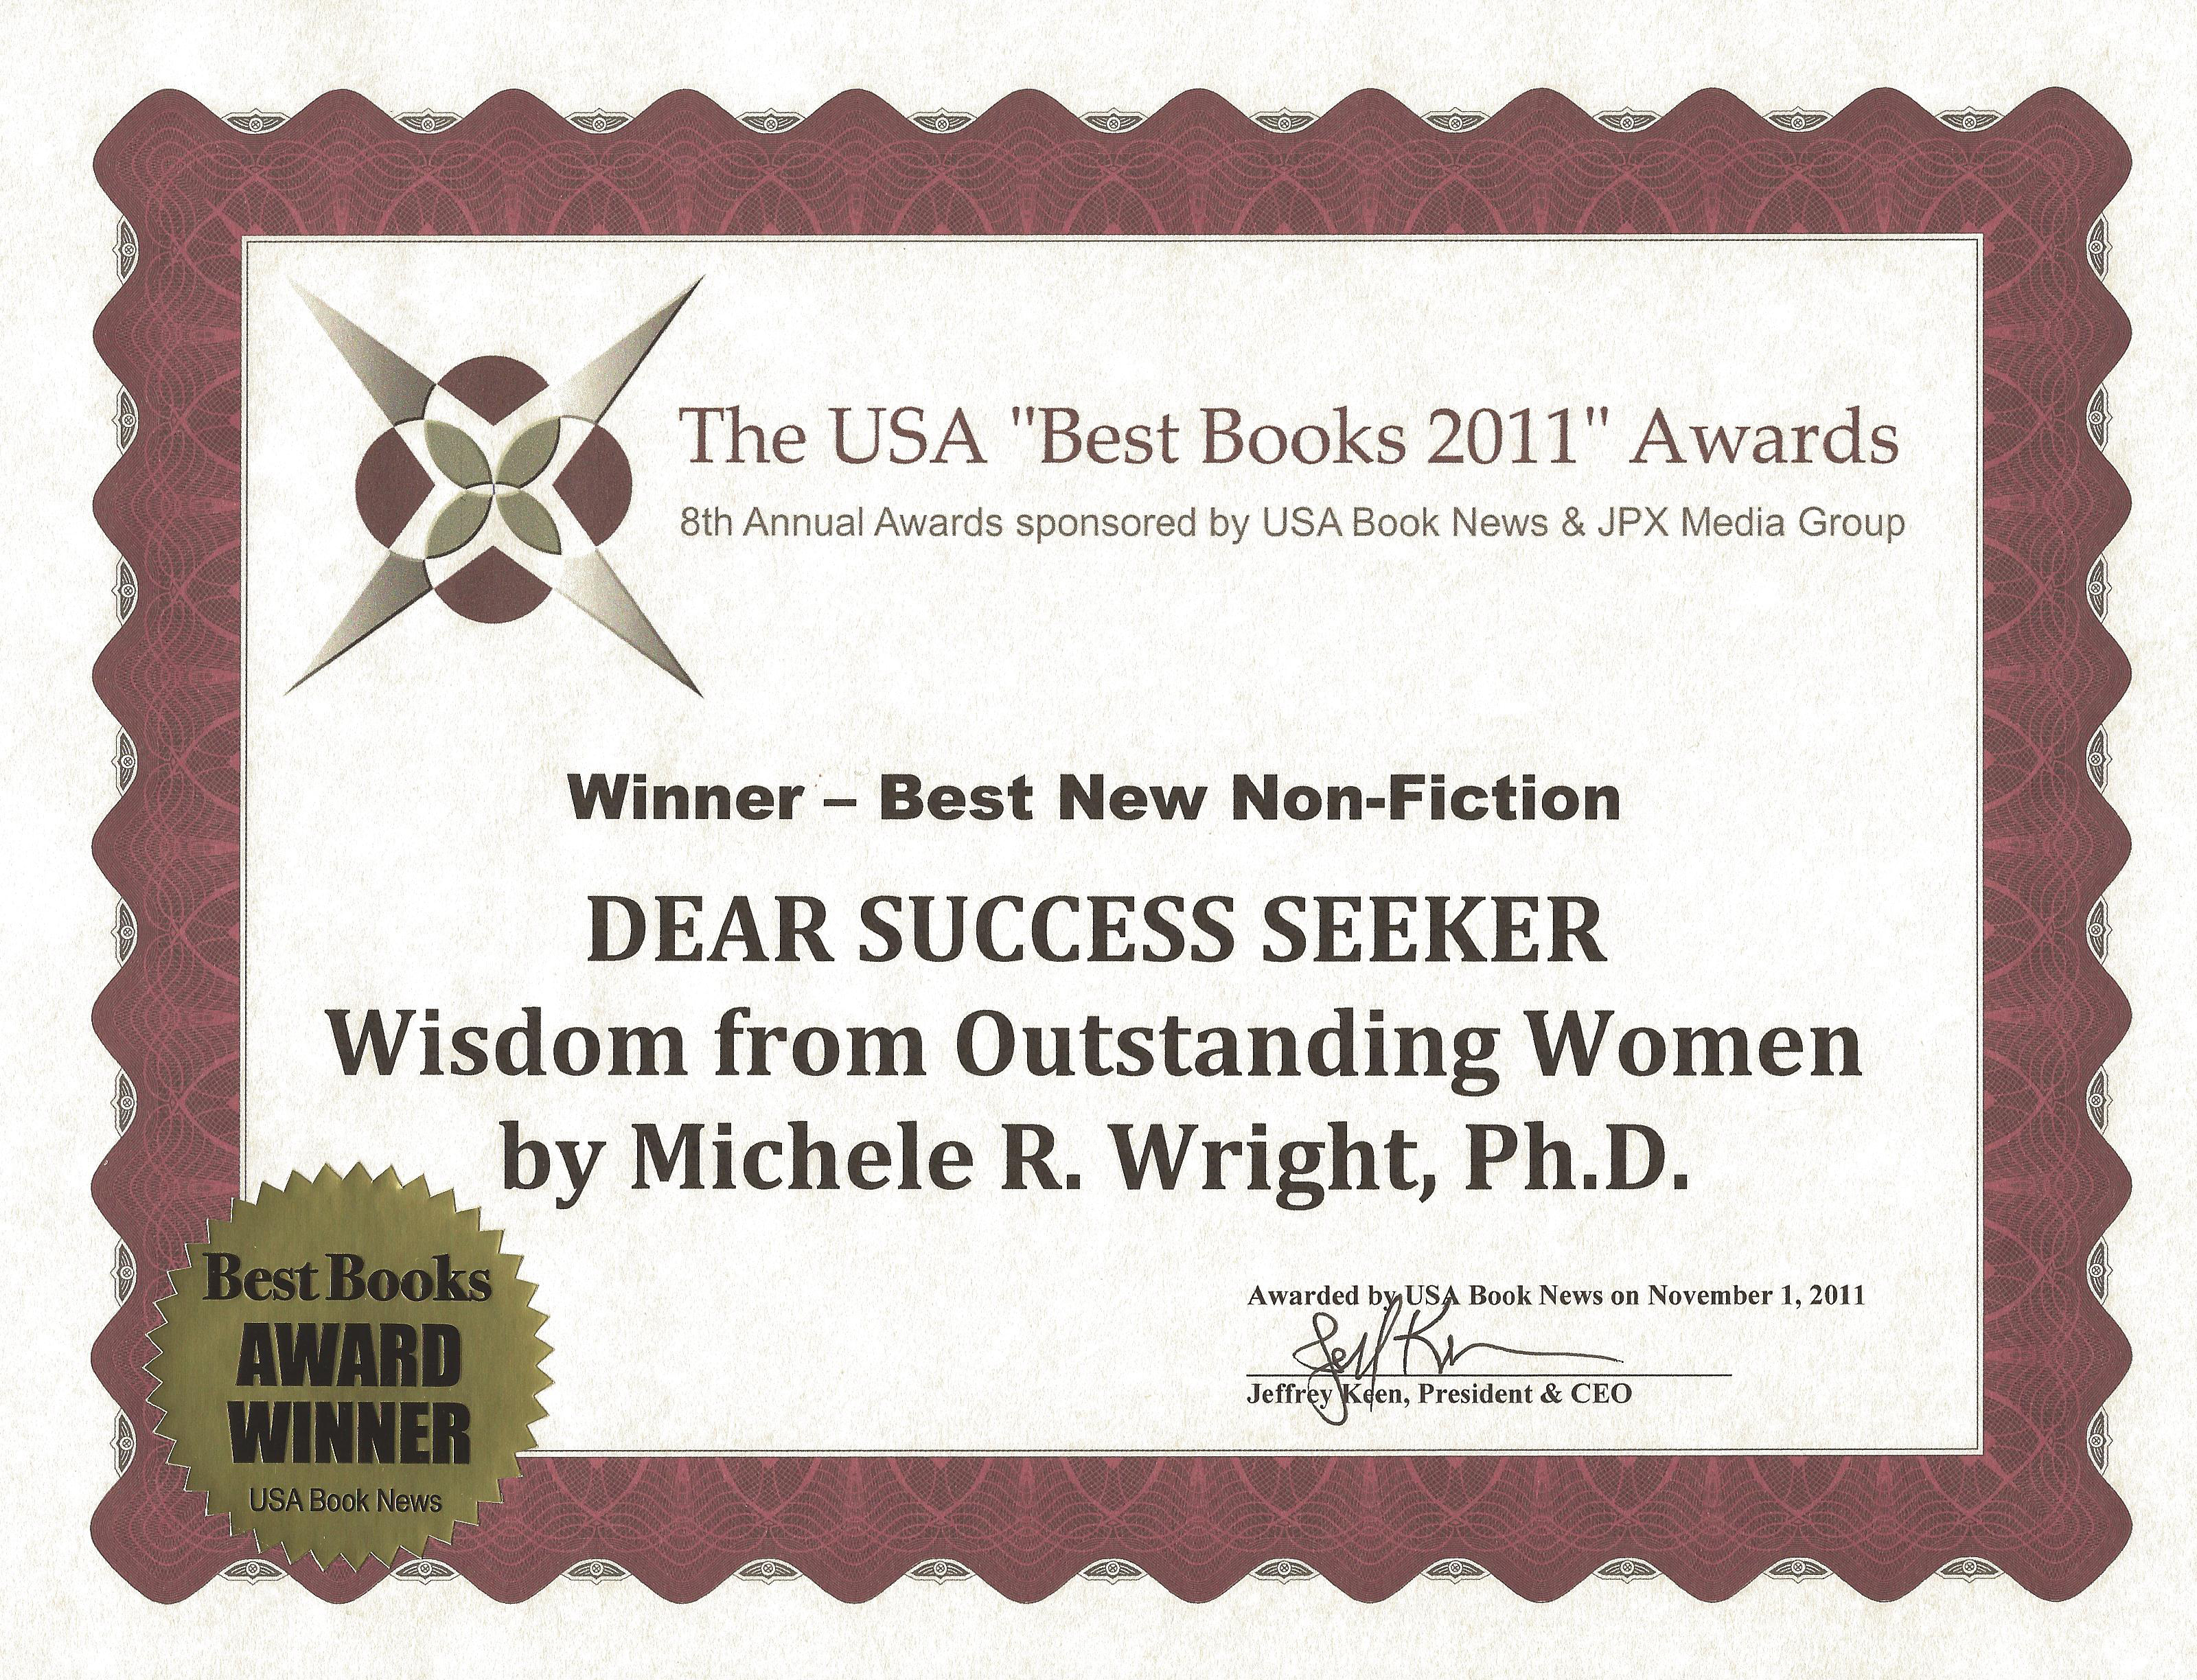 dr michele r wright career advice success expert author of usa winner